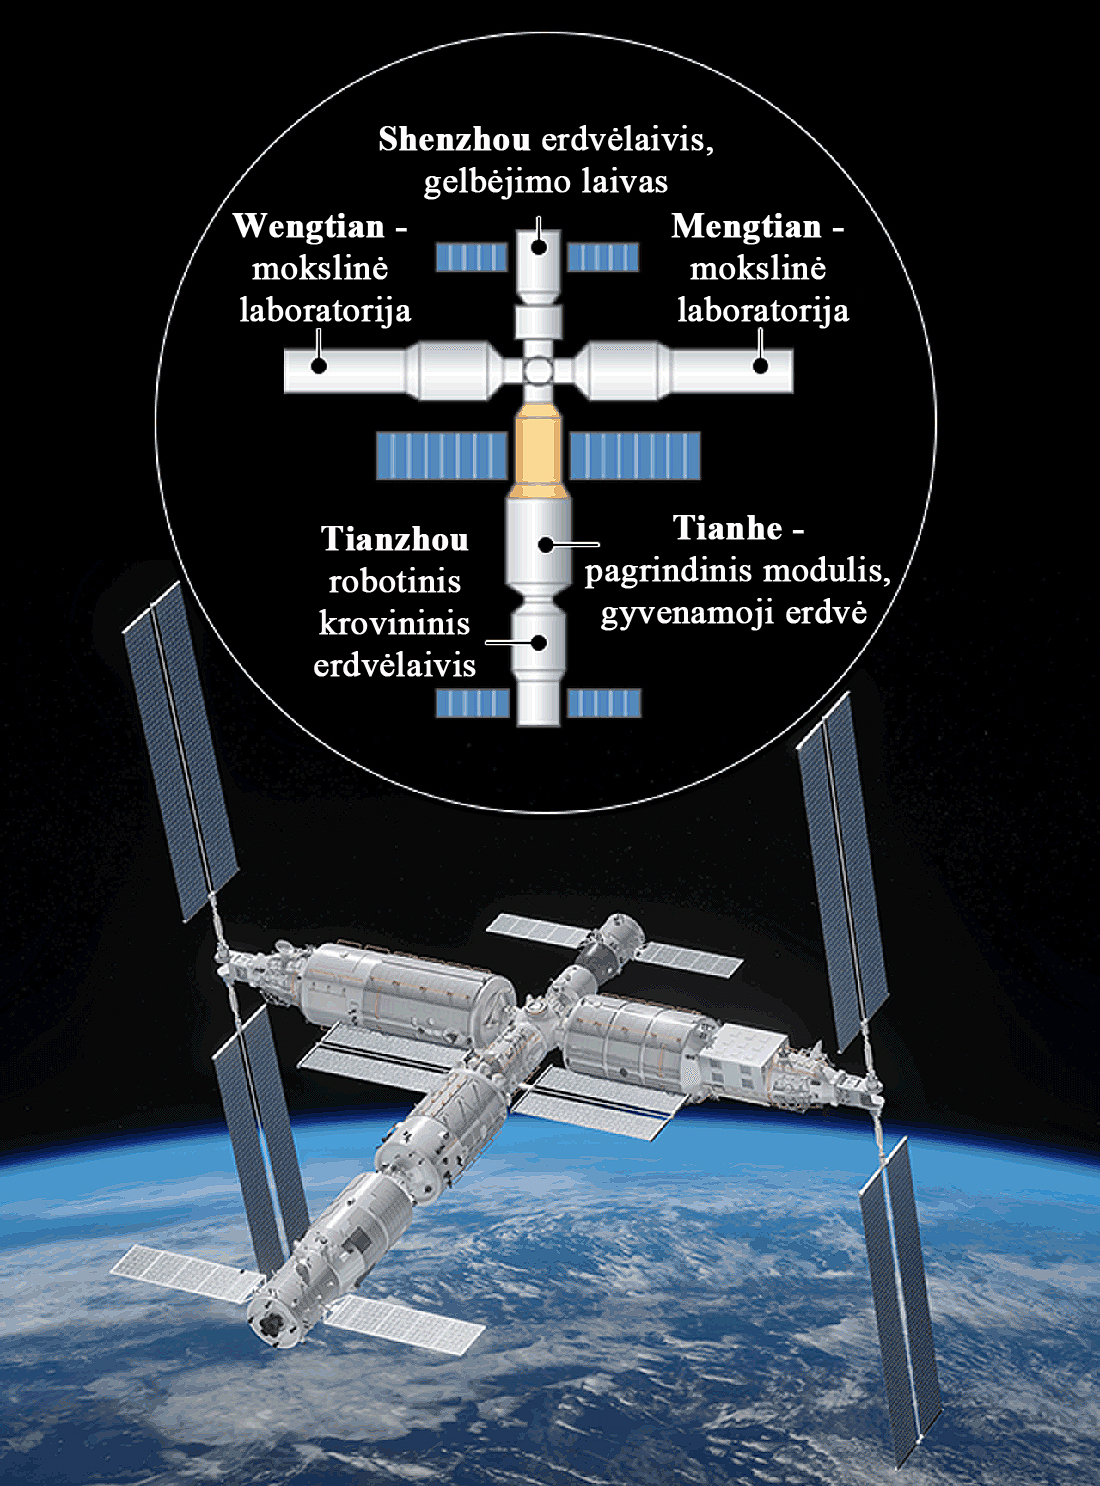 Tianhe space station